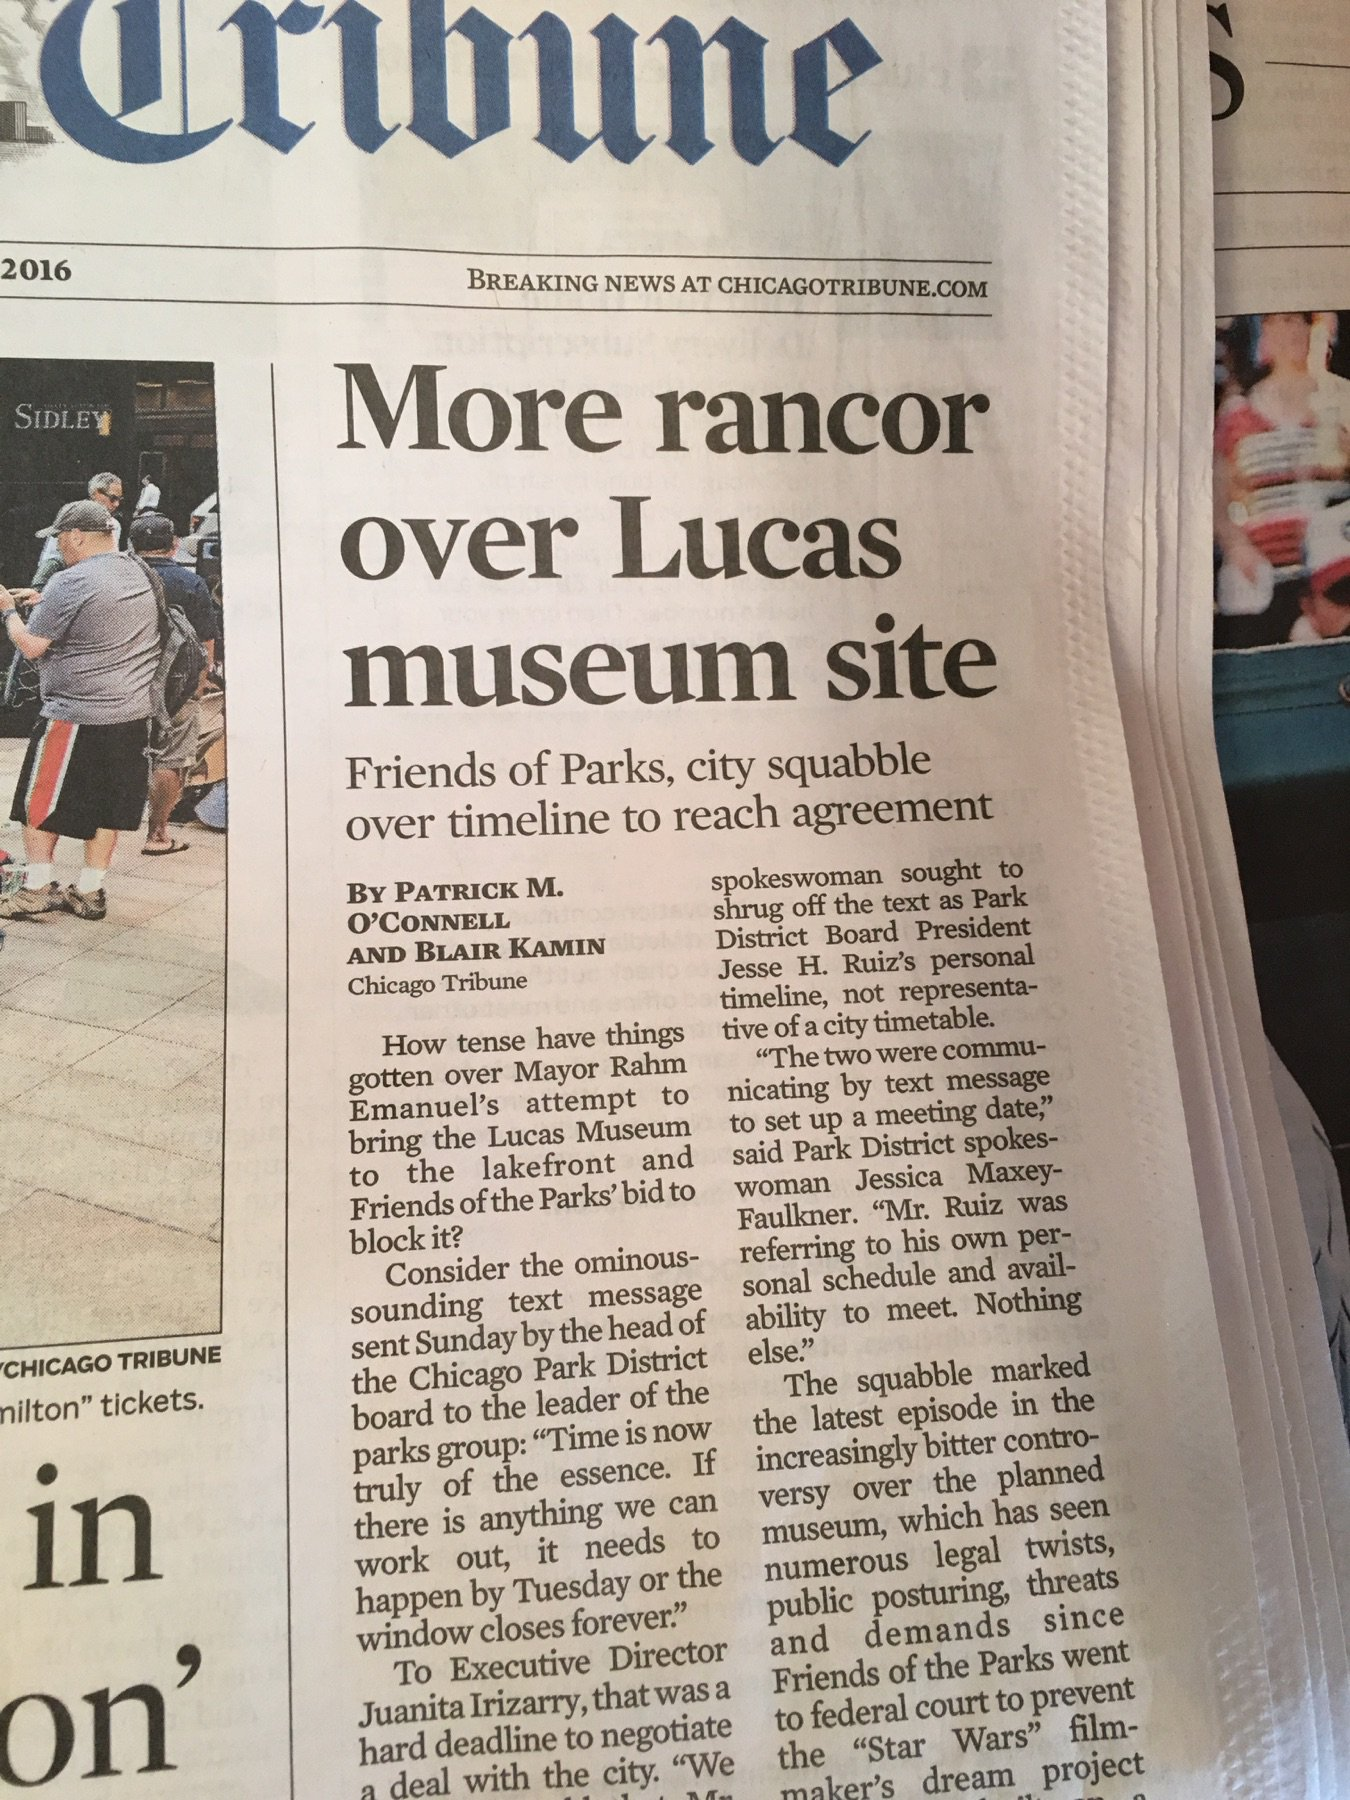 More rancor over Lucas museum site